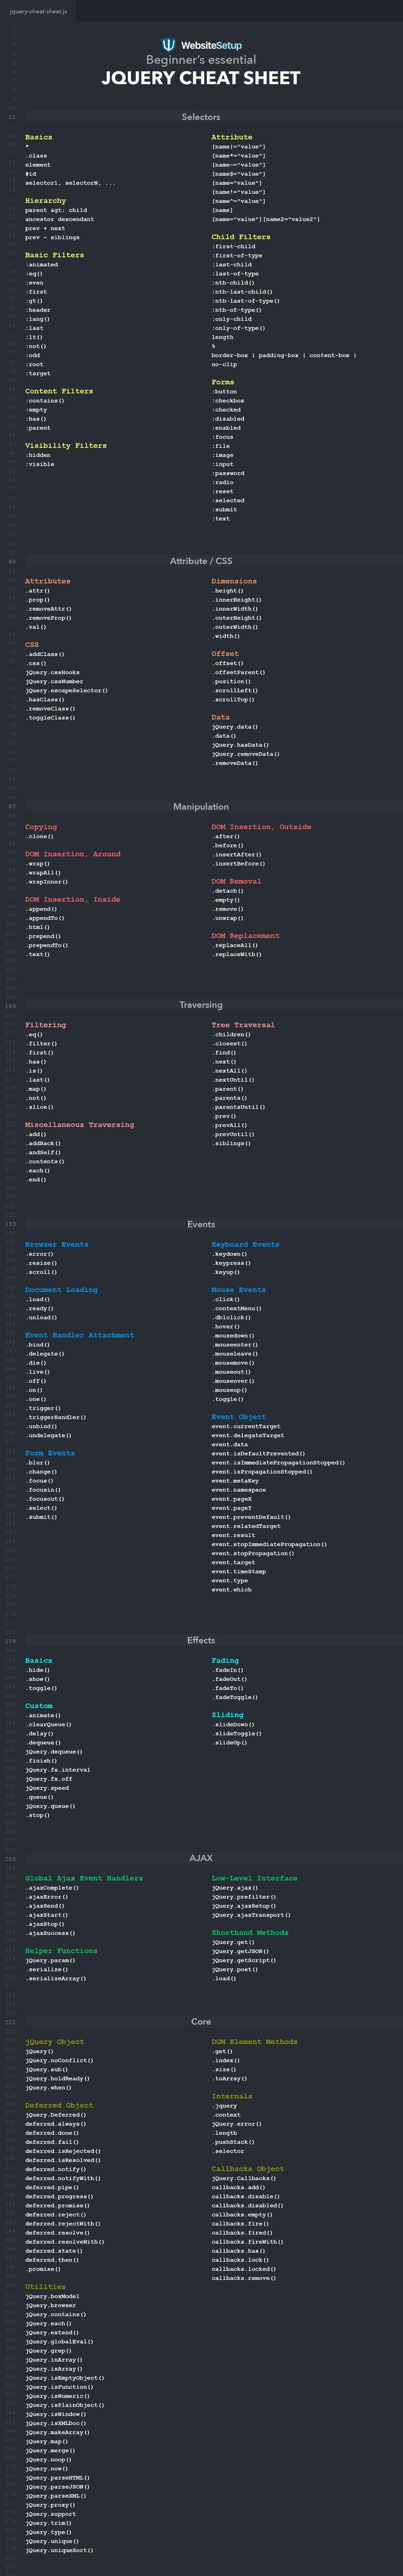 Whether you're an avid jQuery developer or just someone who is starting out, this jQuery cheat sheet below will help you out. If you have any feedback regarding this jQuery Cheat Sheet, feel free to leave a comment or get in touch via email: rob(at)websitesetup(dot)org P.S. Here's a link to th